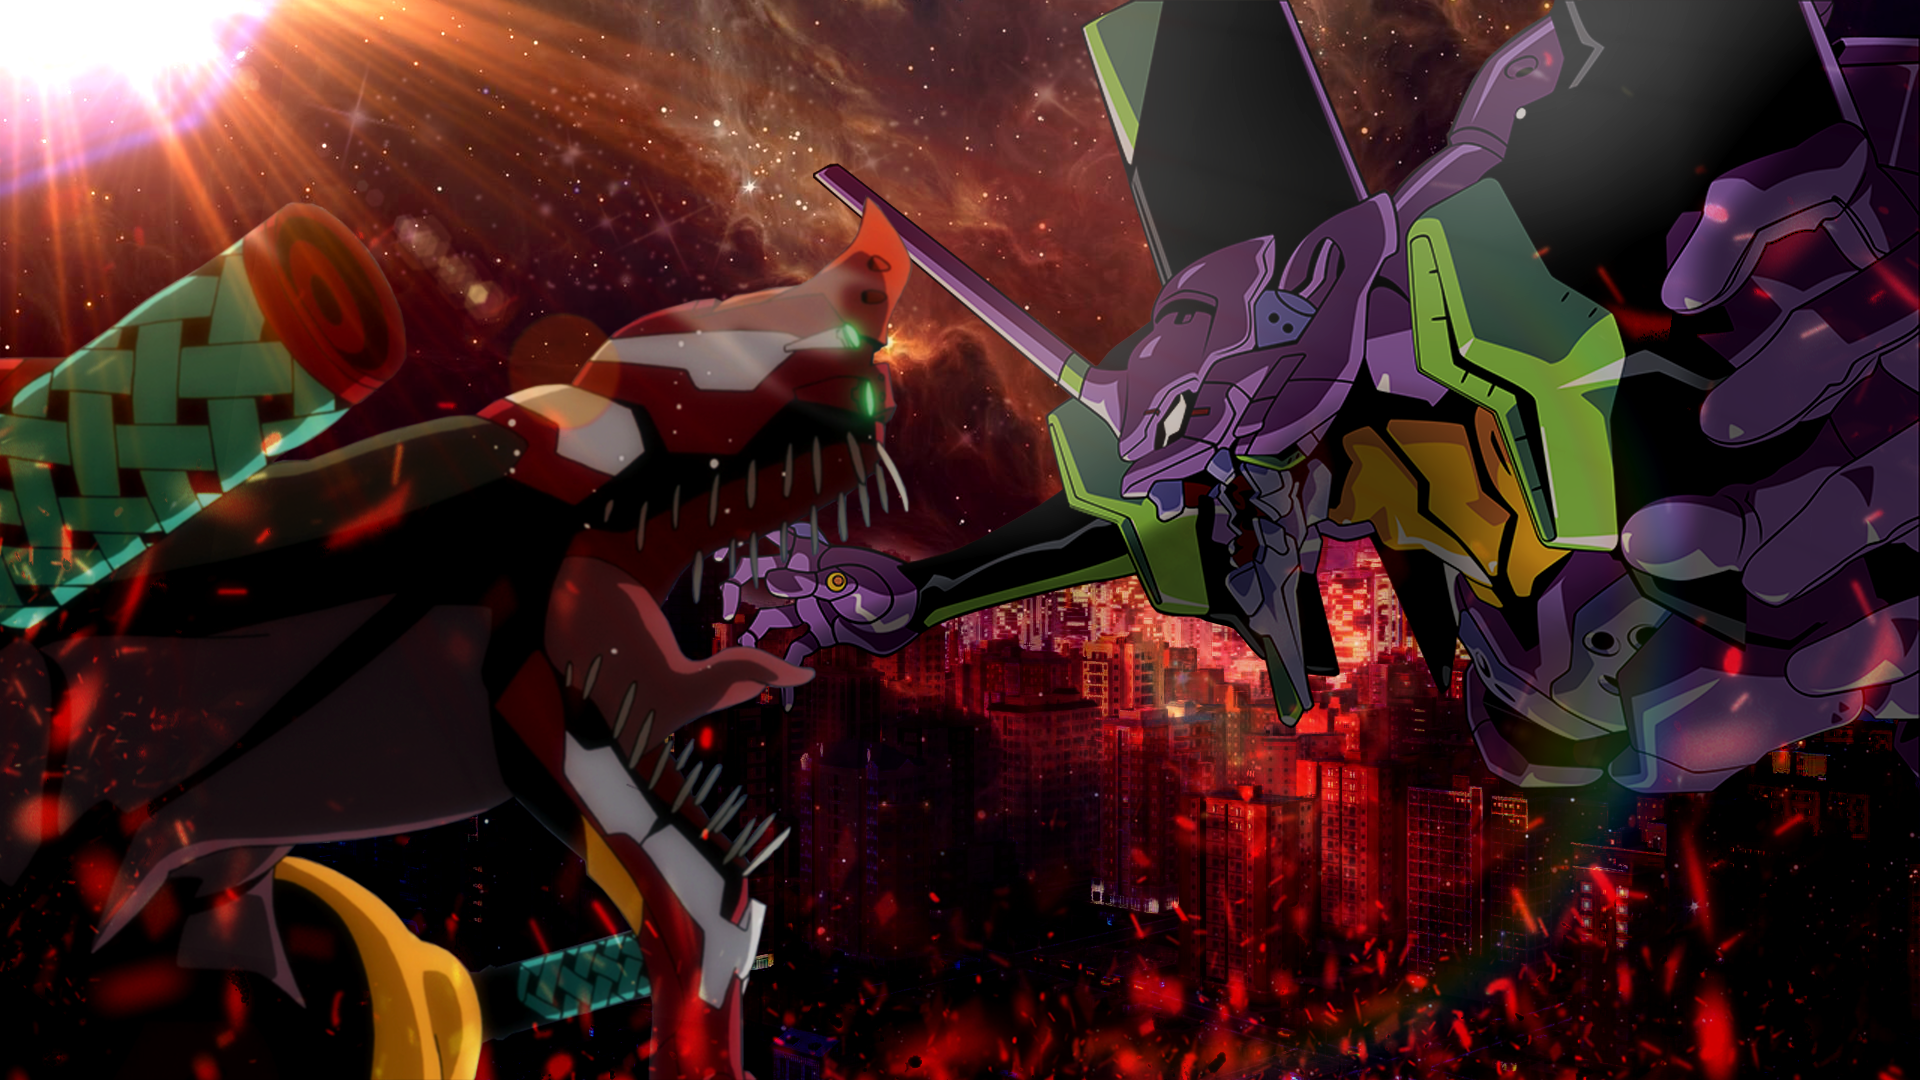 Evangelion Wallpaper 4K Iphone Trick Check more at https